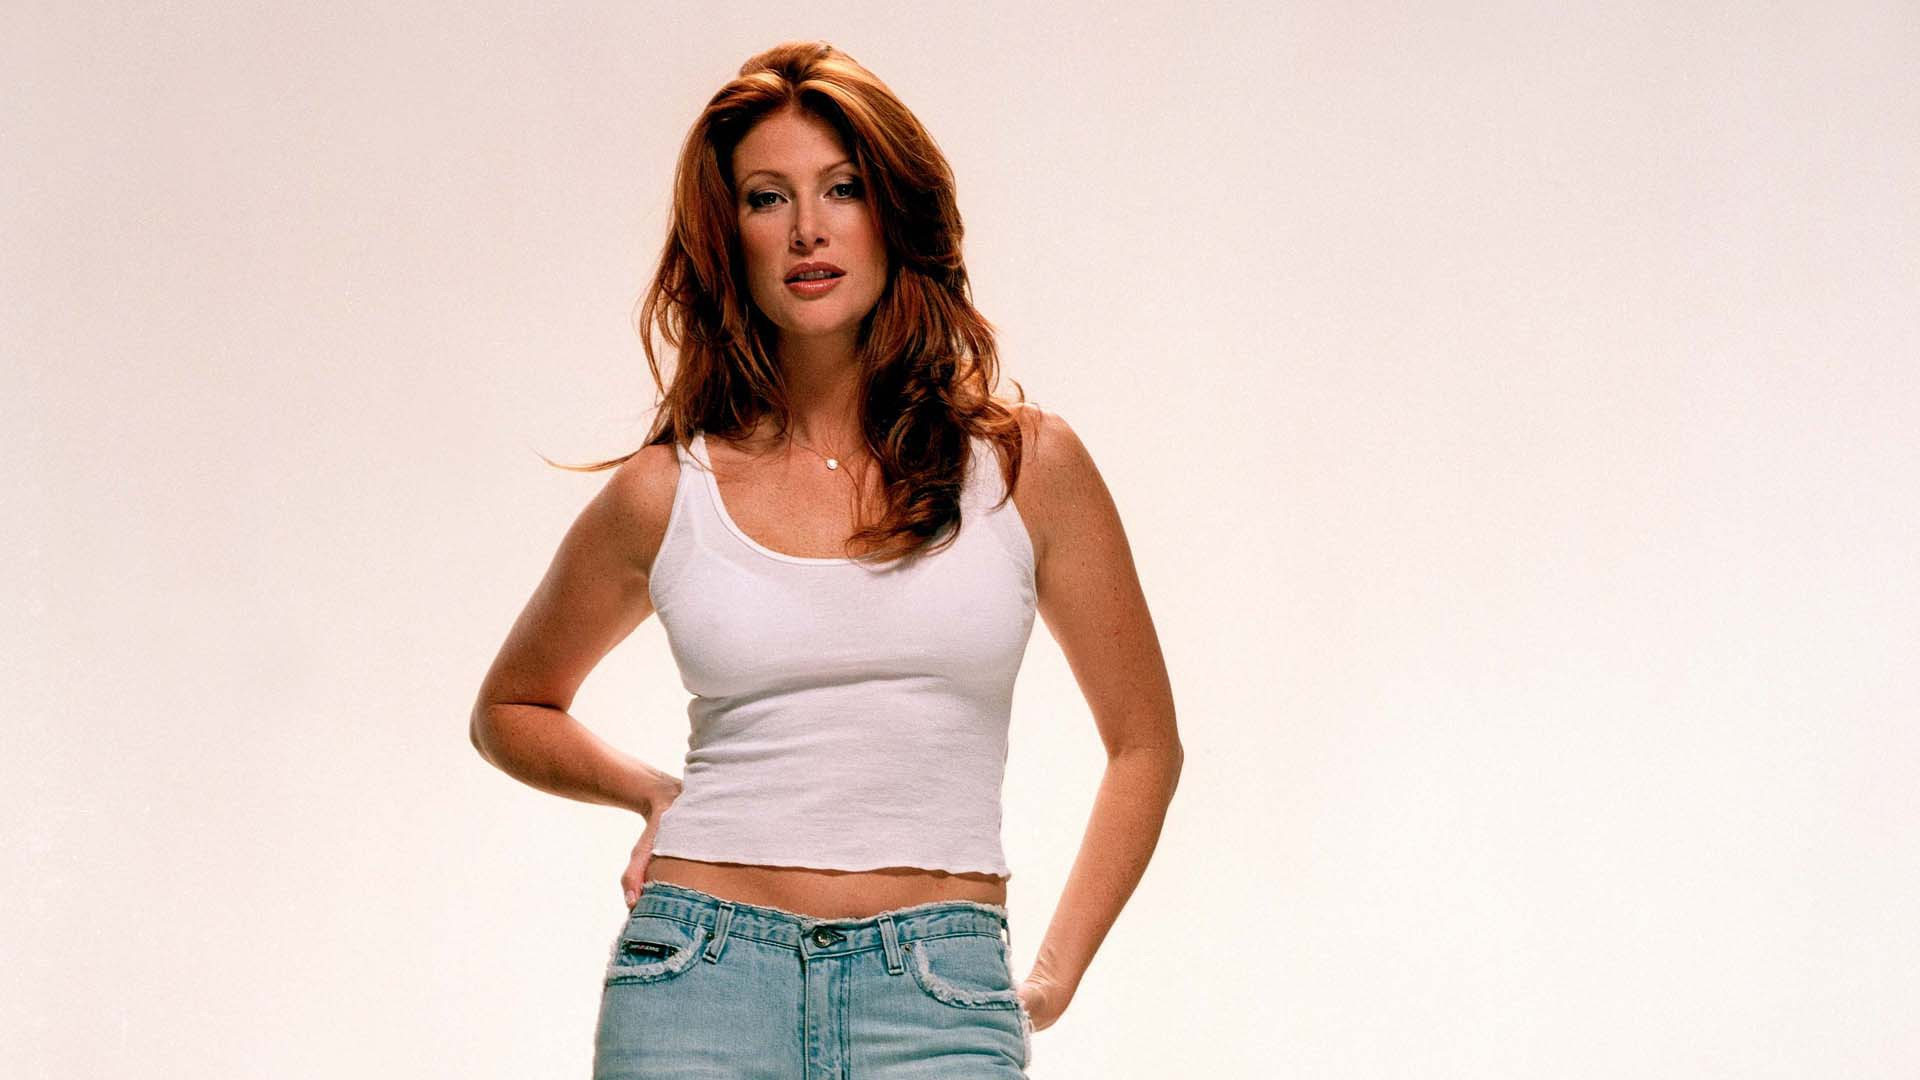 Angie Everhart Playboy angie everhart net worth – height, weight, age, bio